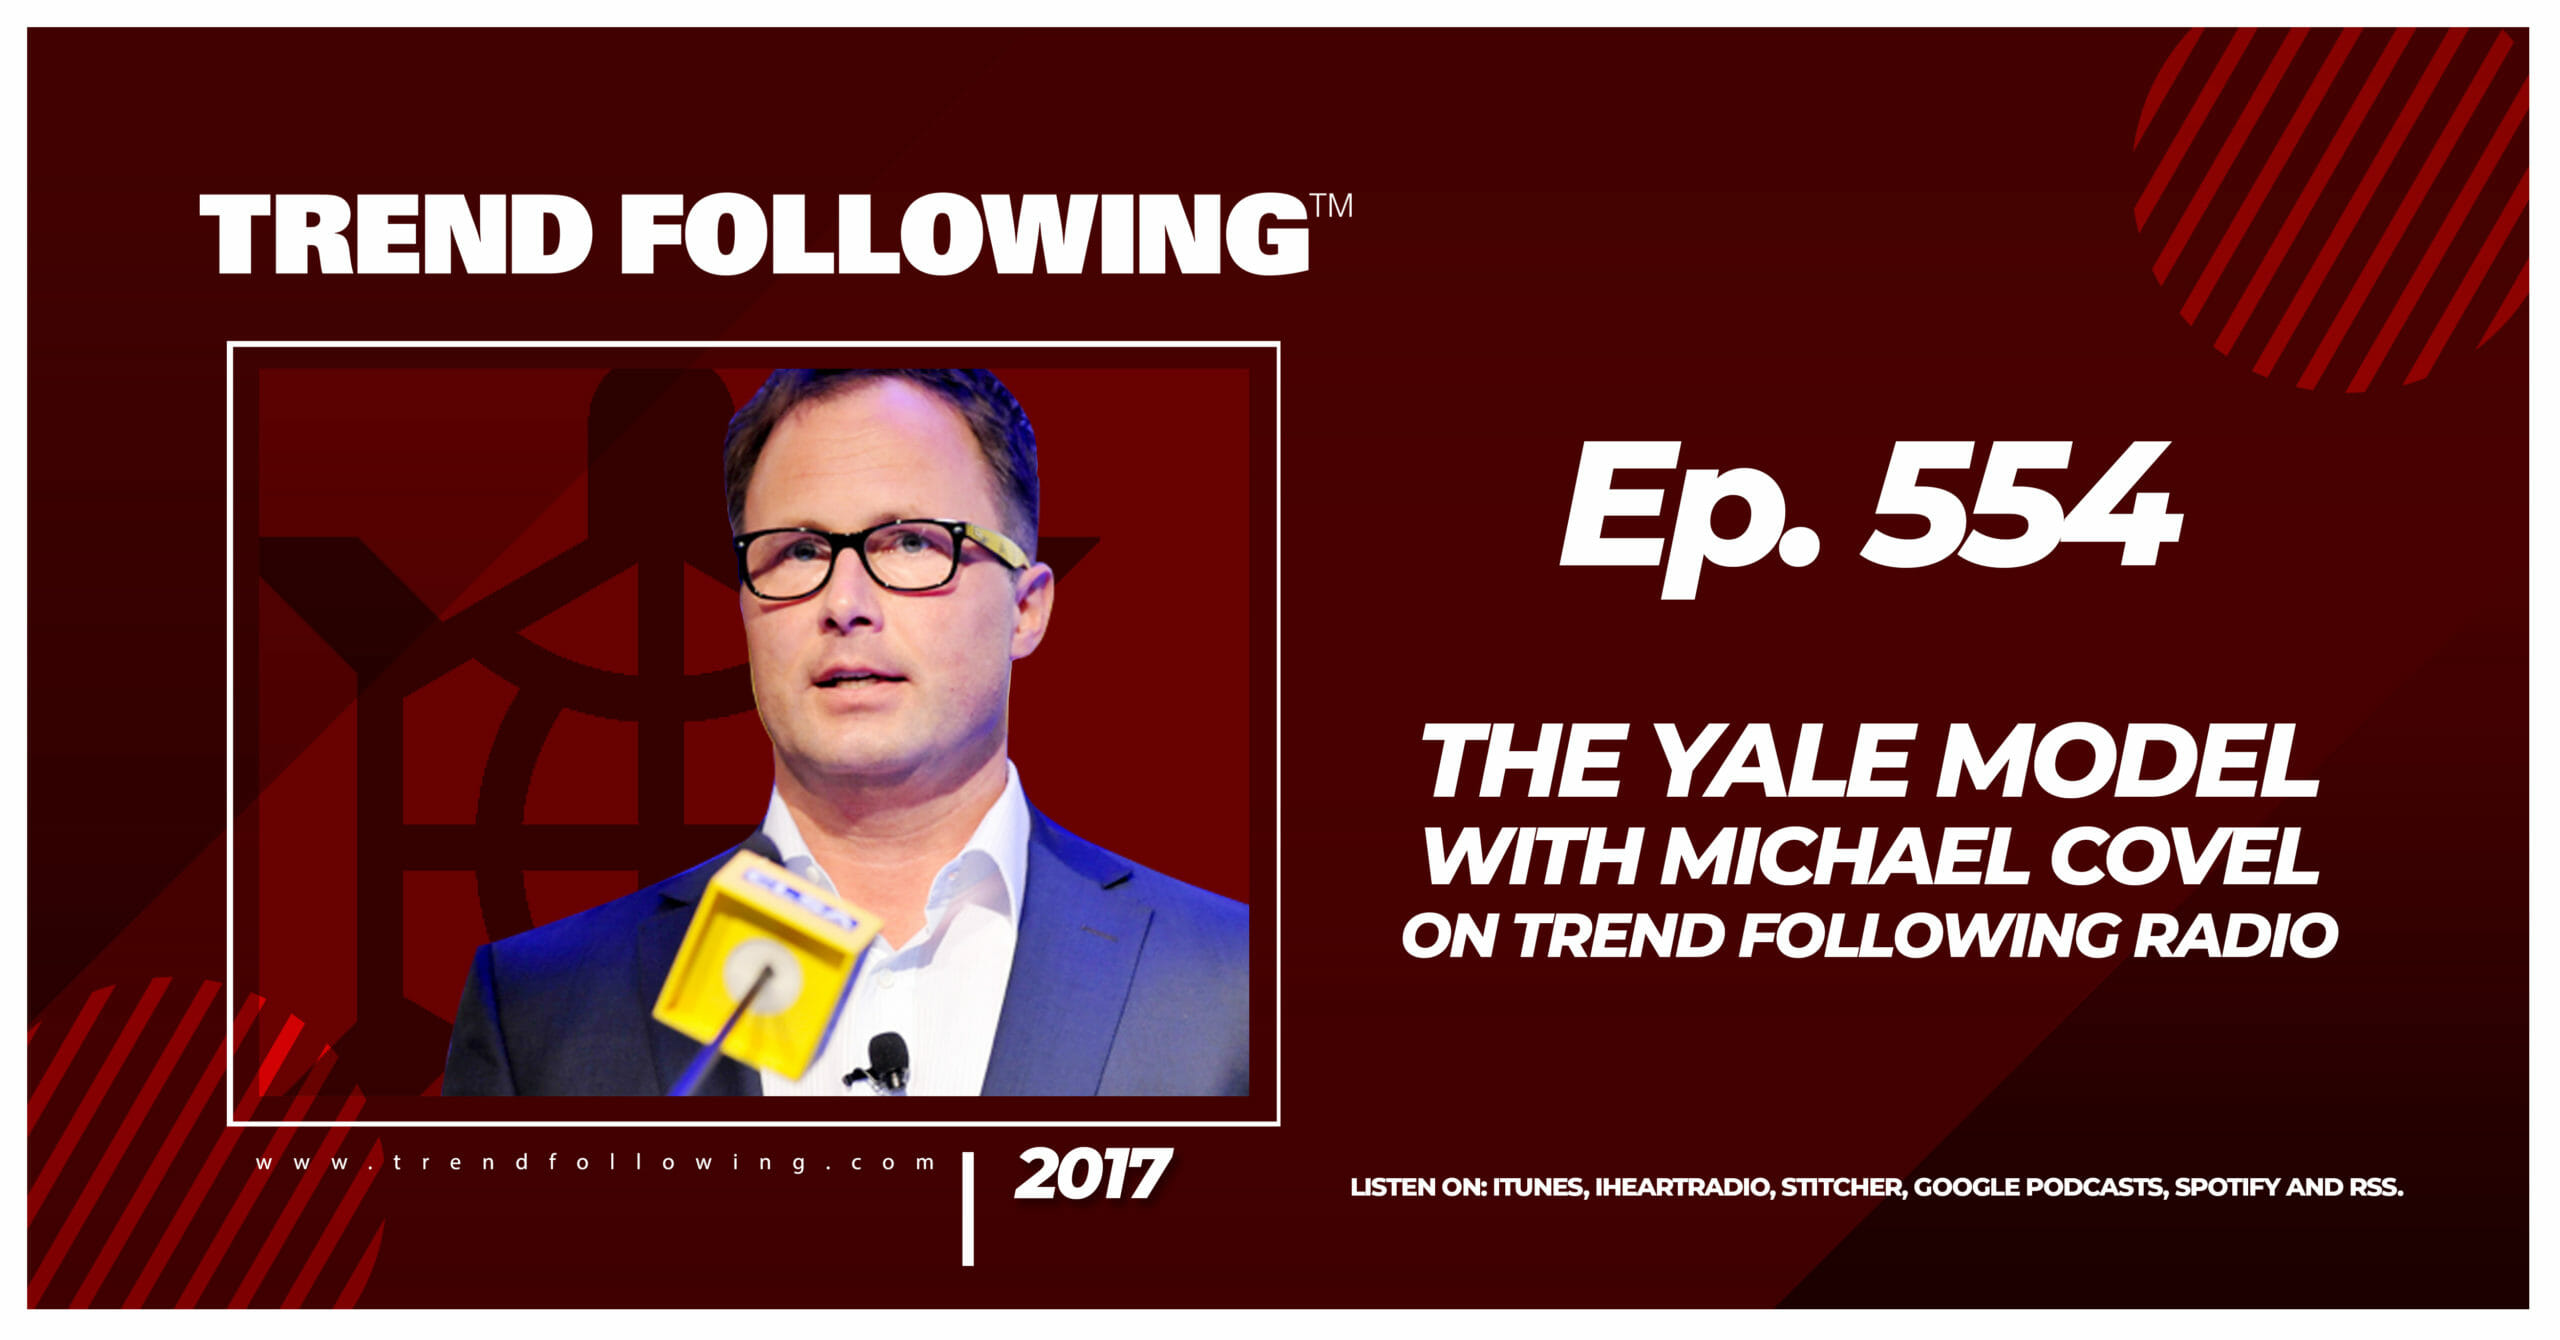 The Yale Model with Michael Covel on Trend Following Radio